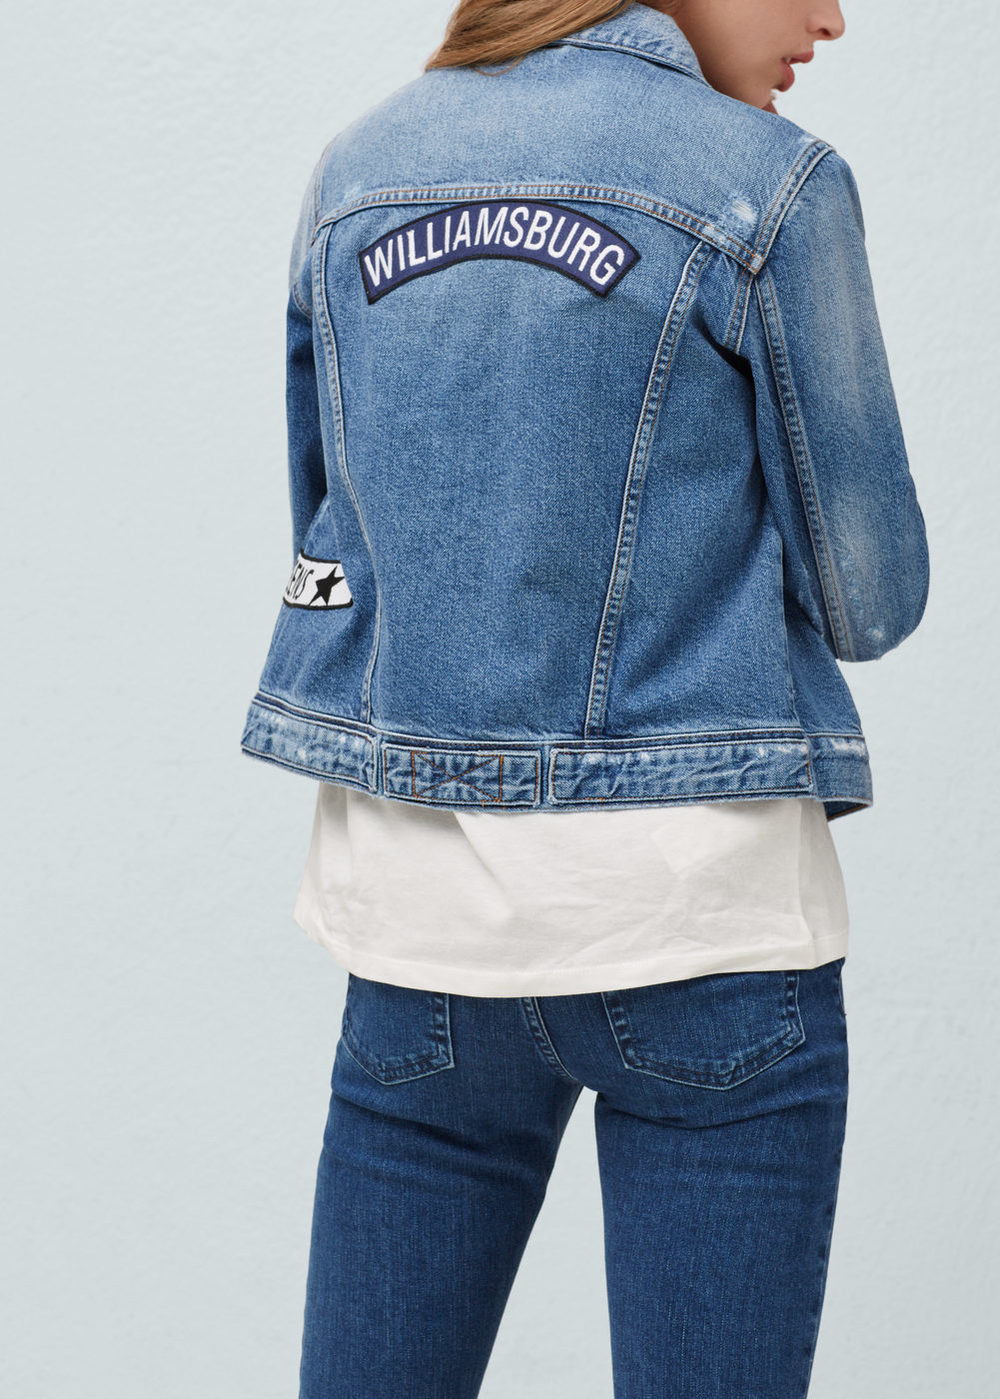 Mango 'Williamsburg' Denim Jacket on sale 🍒 DNAMAG.co